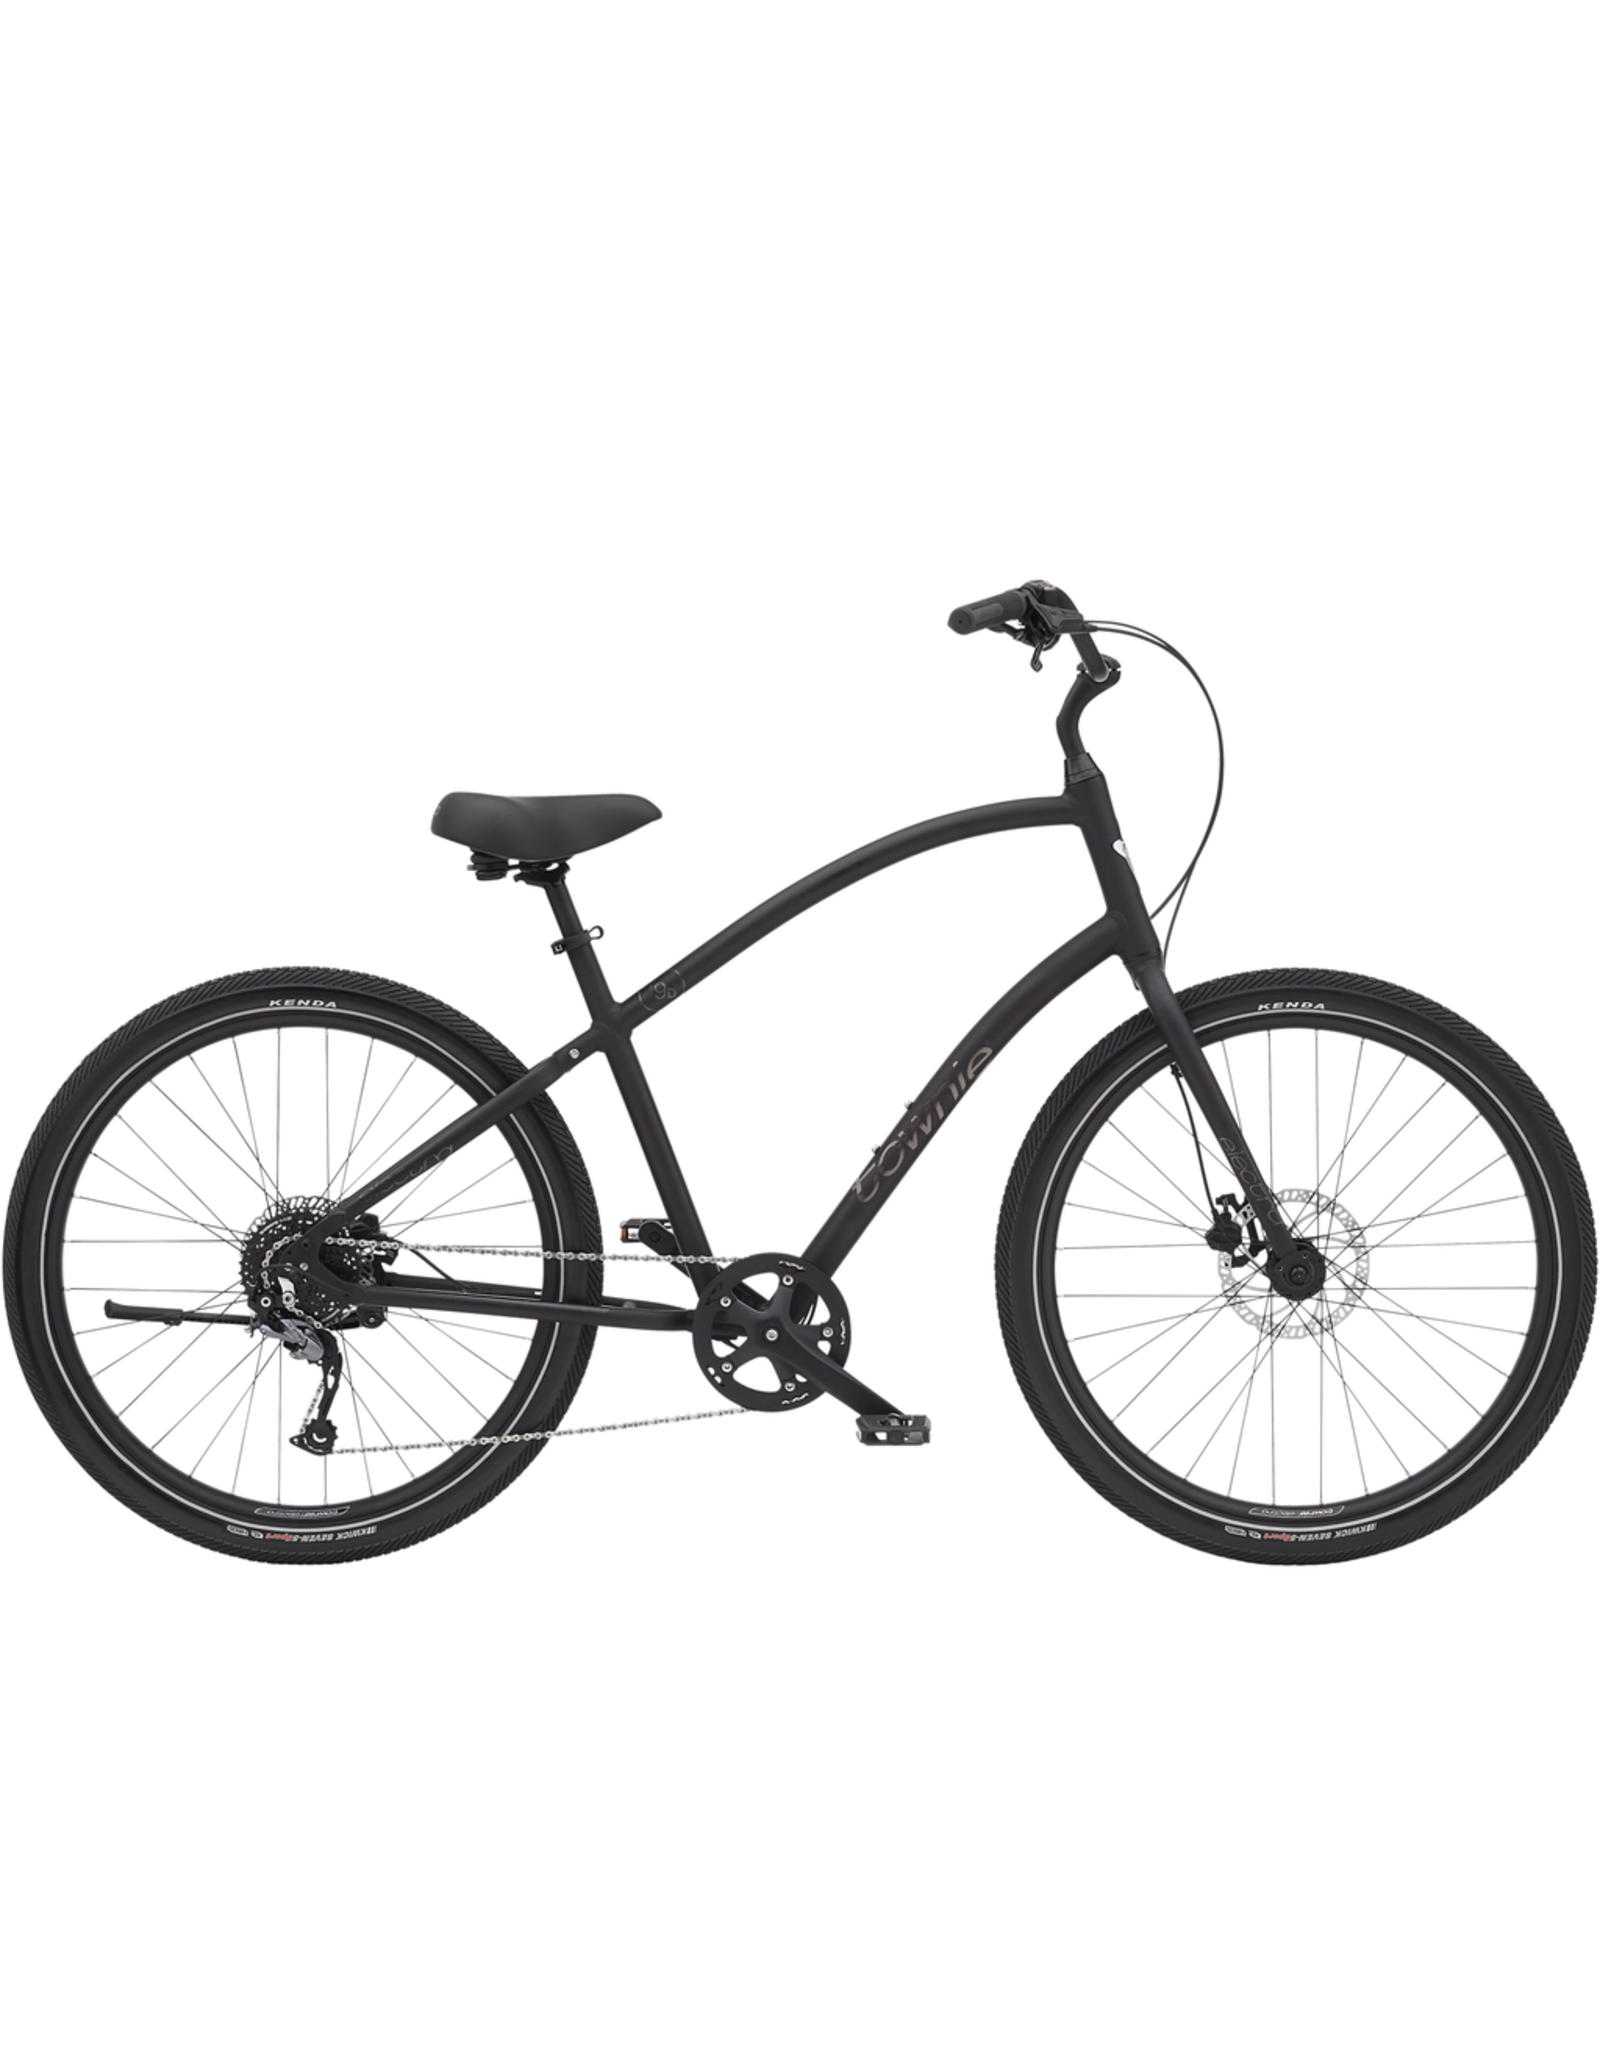 Townie Electra Townie Path 9D Step-Over